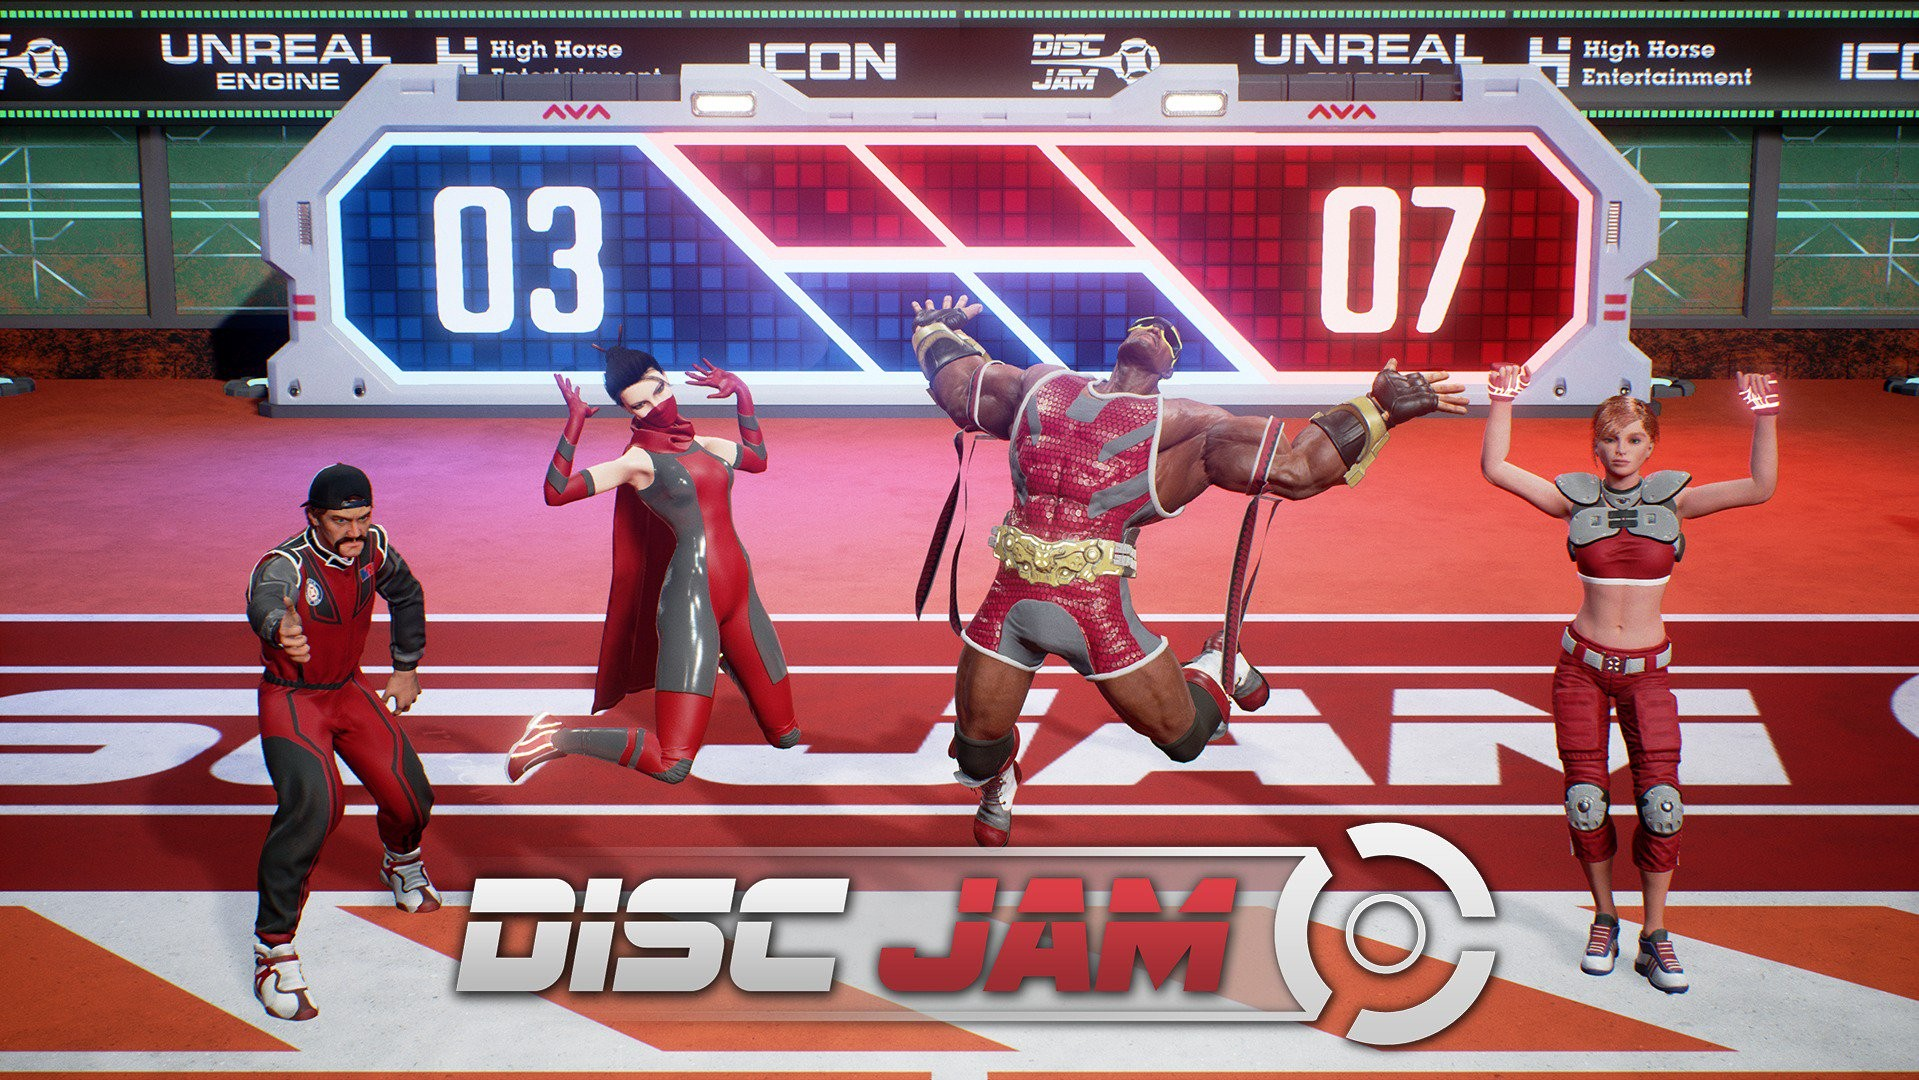 how to get disc jam on ps4